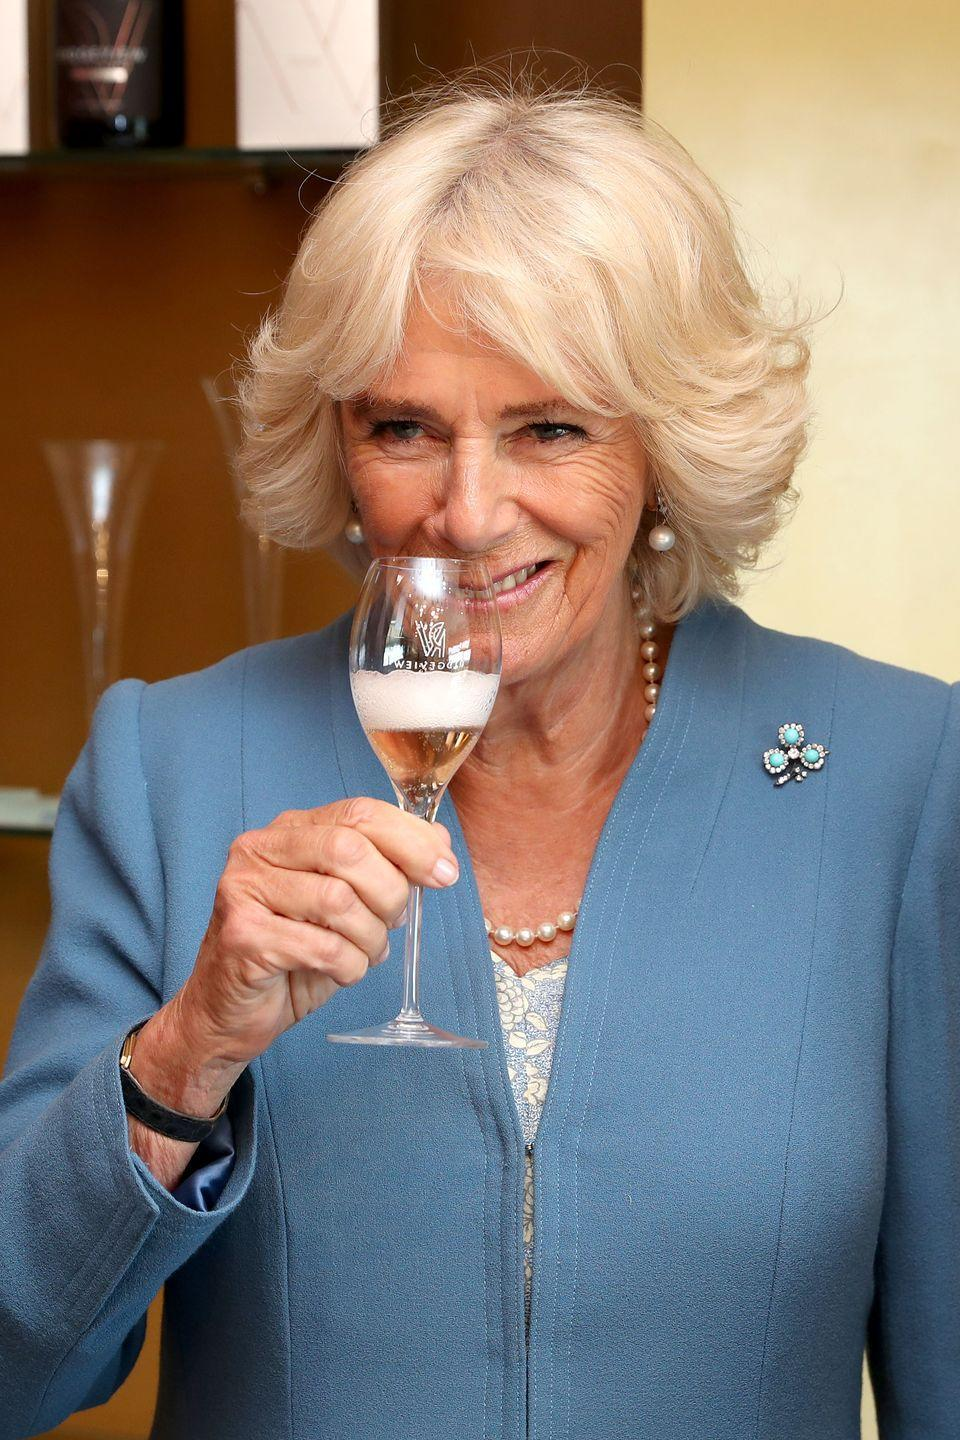 <p>The Duchess of Cornwall's turquoise shamrock brooch, which she has worn often (including for a visit to a winery in East Sussex in 2019), features three leaves of Persian turquoise stones surrounded by diamonds. While the exact provenance of the piece is unknown, there has been speculation that it could be a wedding gift Queen Elizabeth received in 1947 from the Dowager Duchess of Portland.</p>